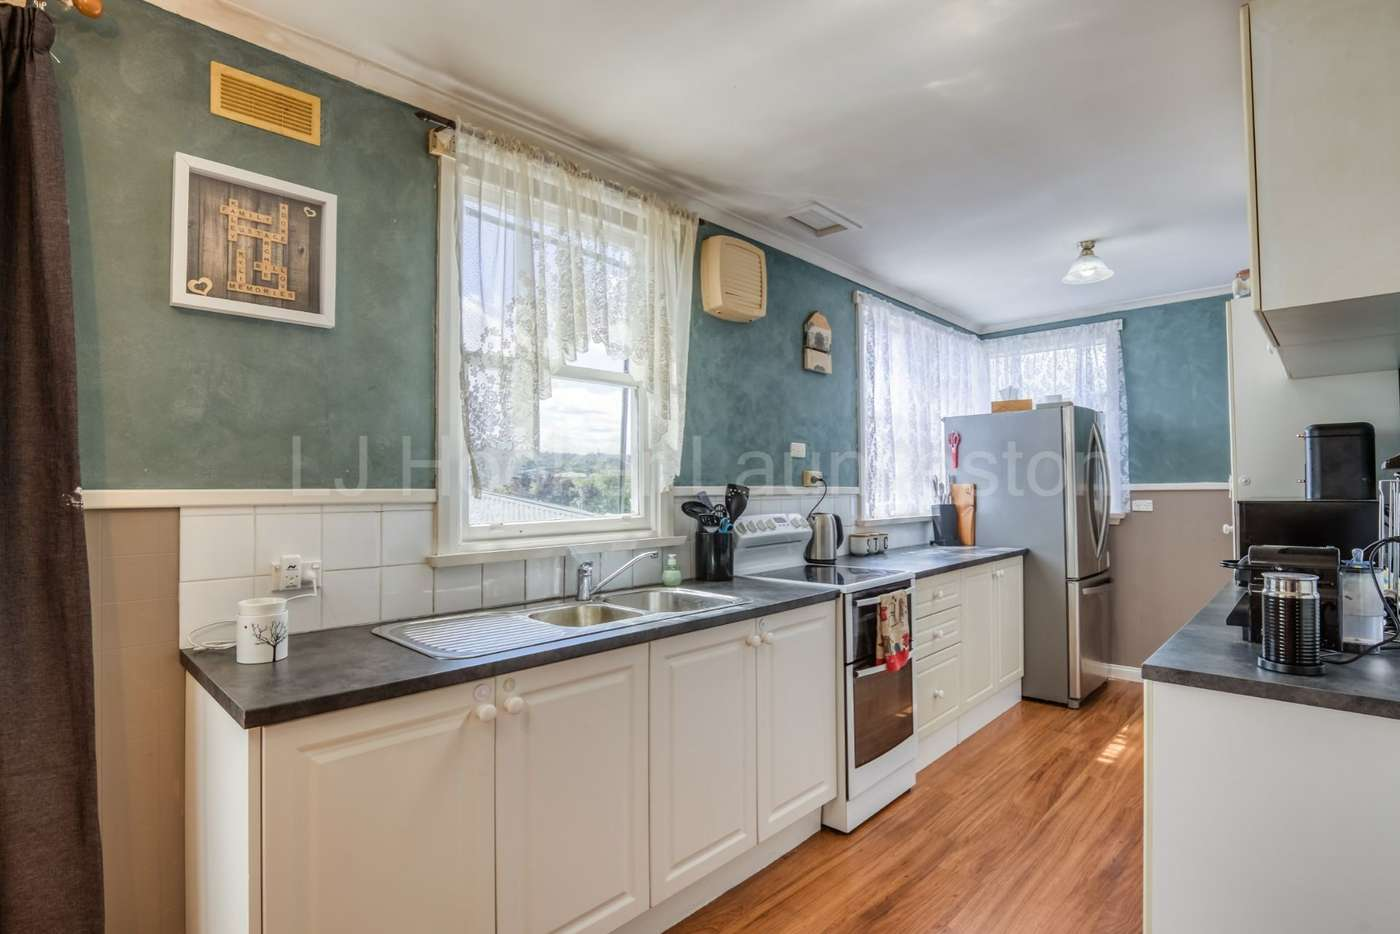 Fifth view of Homely house listing, 26 Kennedy Street, Mayfield TAS 7248